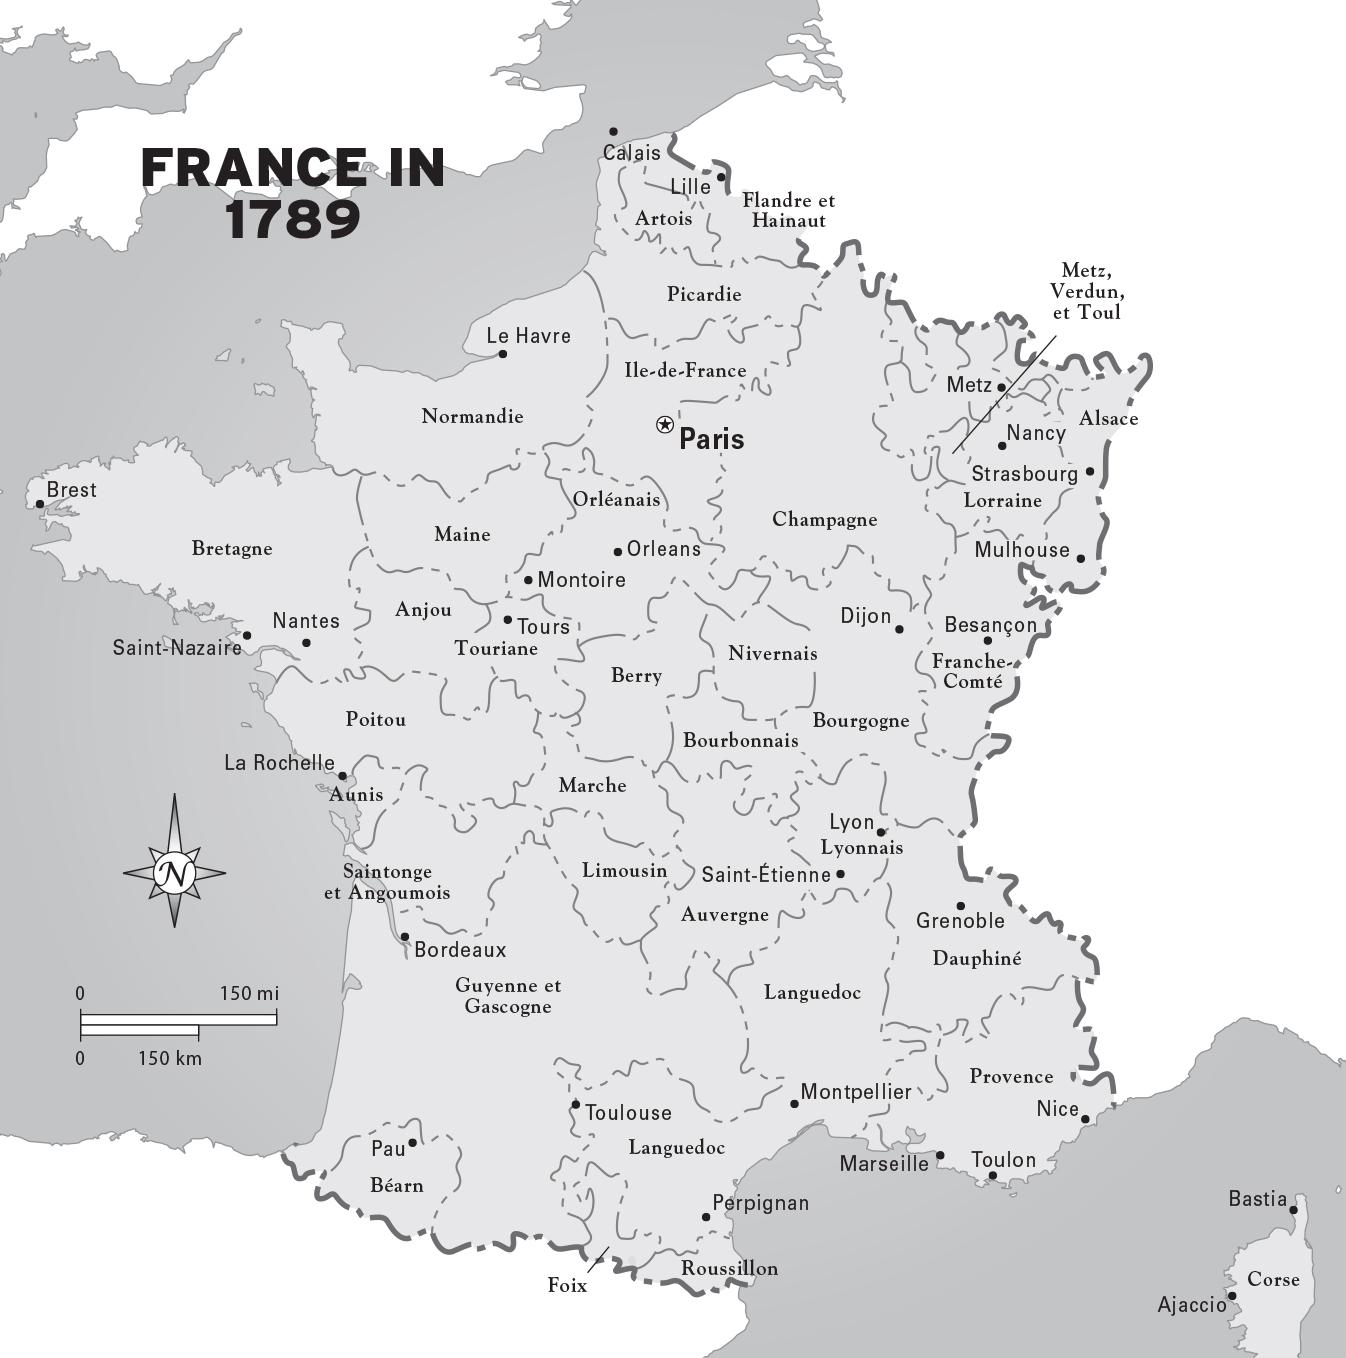 Map Of France In 1789.Map Of France In 1789 Map Of France During French Revolution